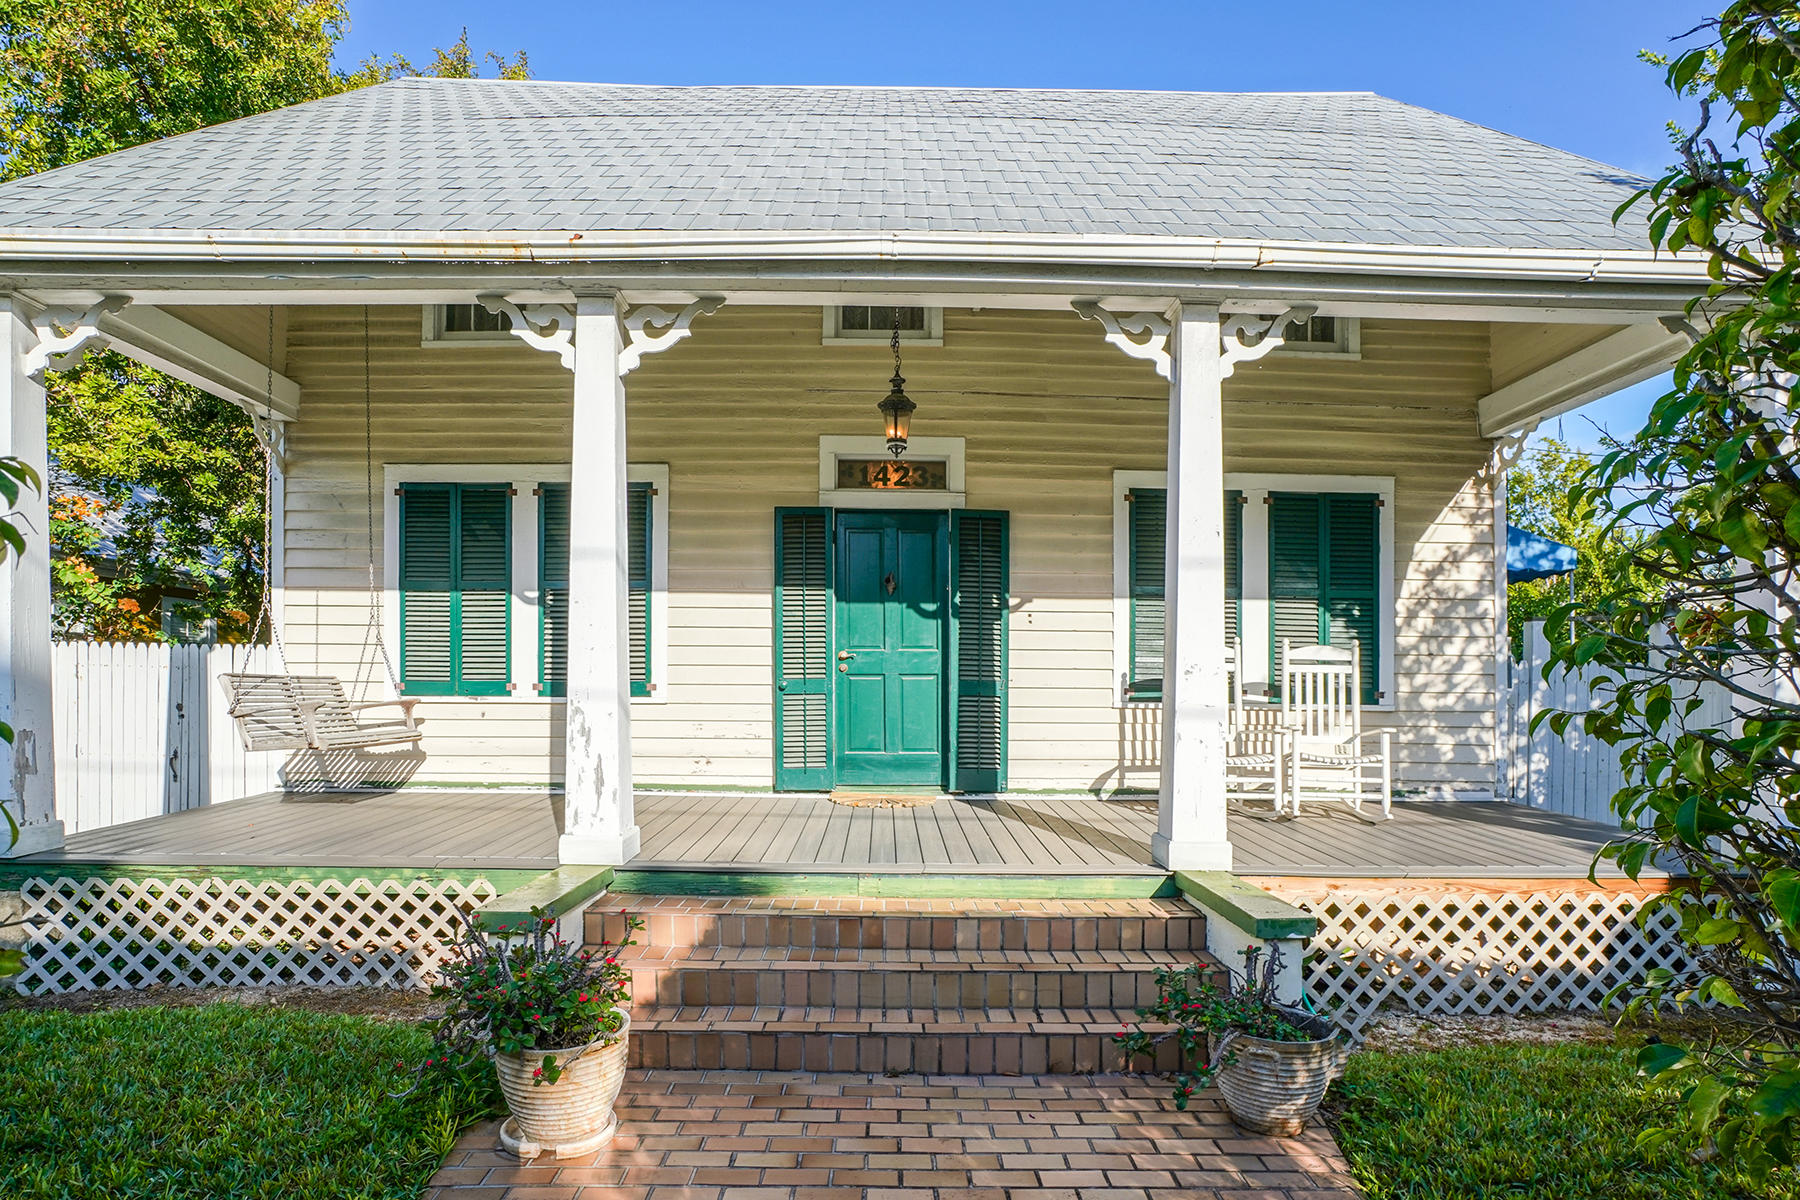 Single Family Home for sale in 1423,1418 Petronia,Newton Street, Key West, Florida ,33040